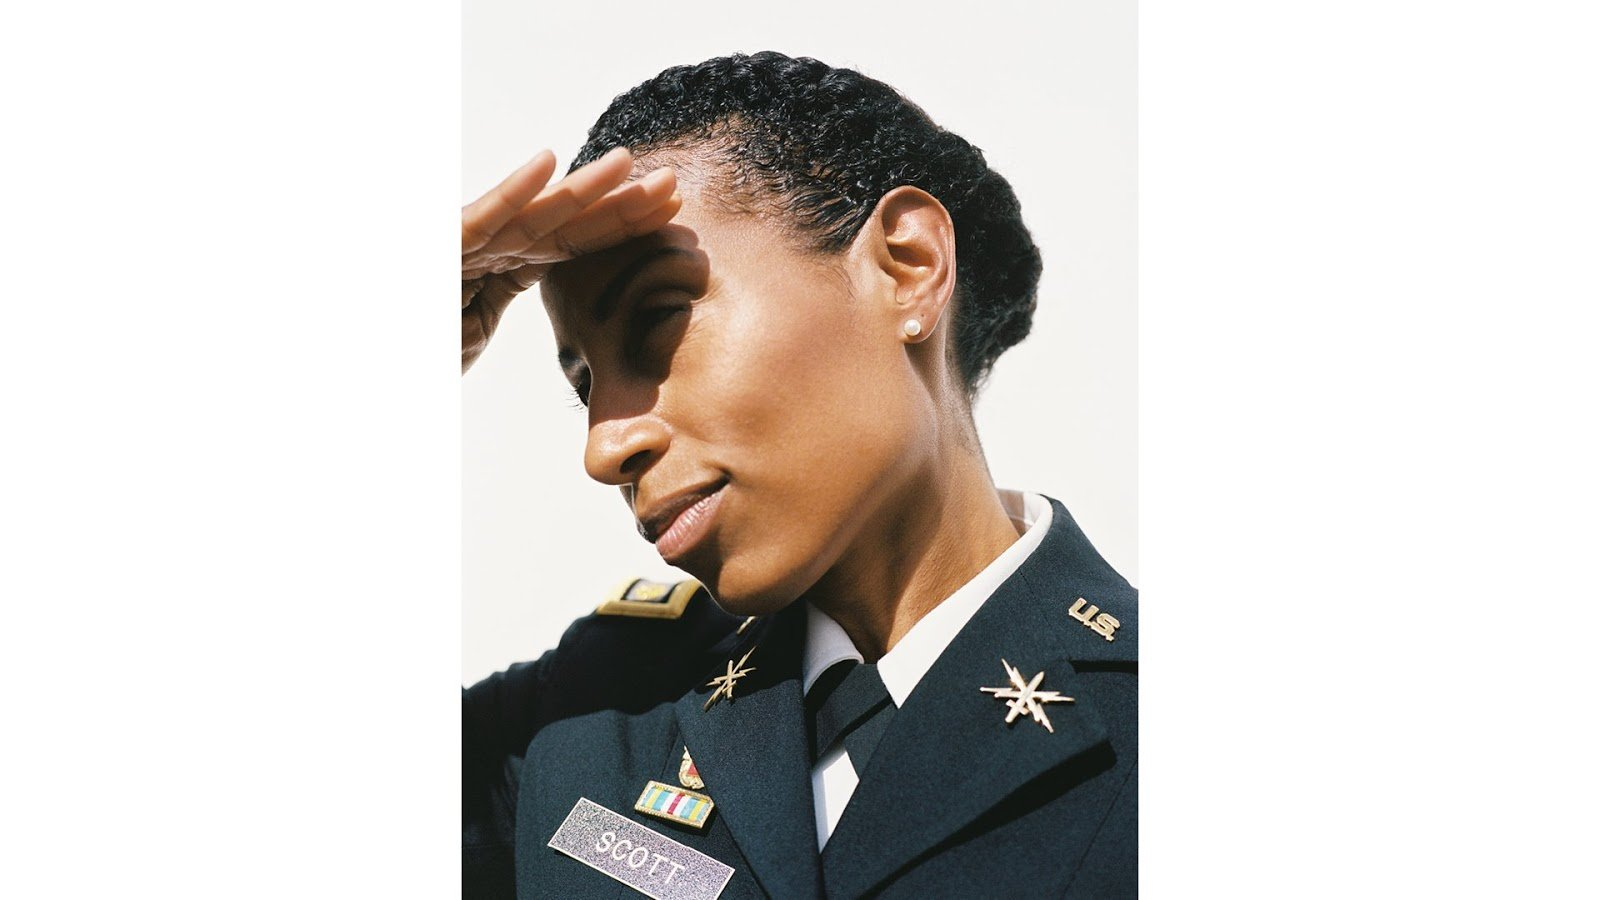 These Black Military Servicewomen Are Unapologetically Rocking Their Natural Hair In Uniform